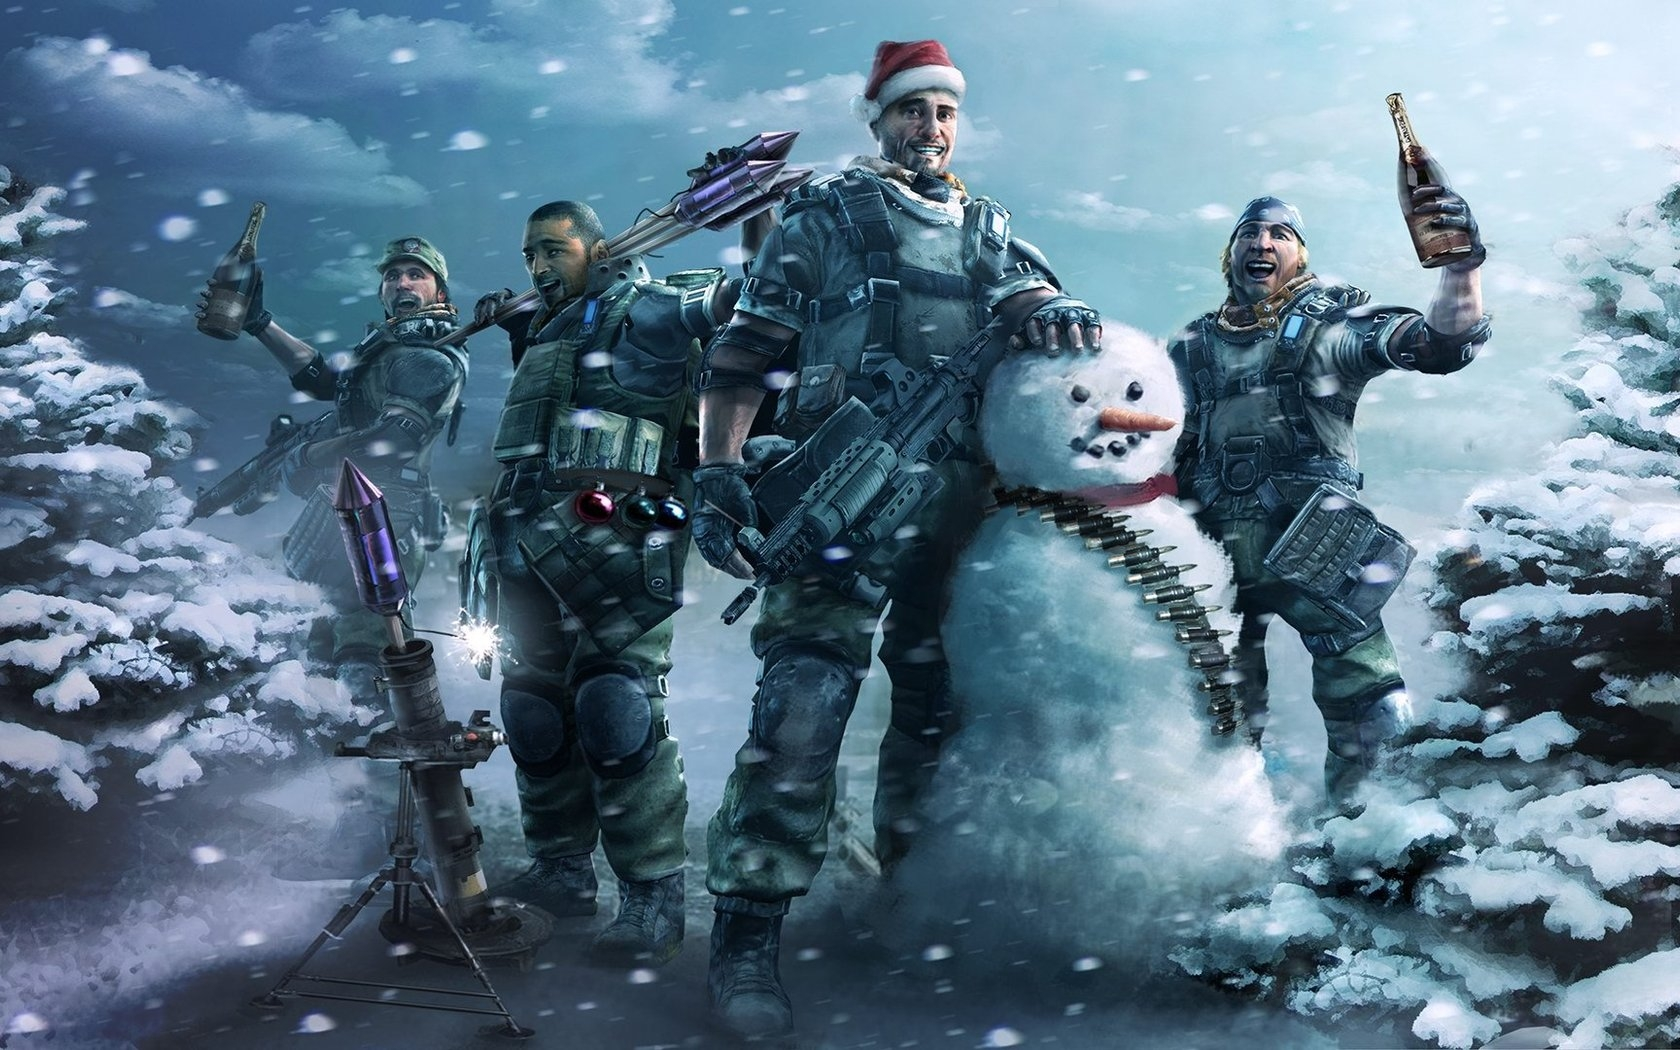 Free Download Bad Company 2 Wallpapers And Images Wallpapers